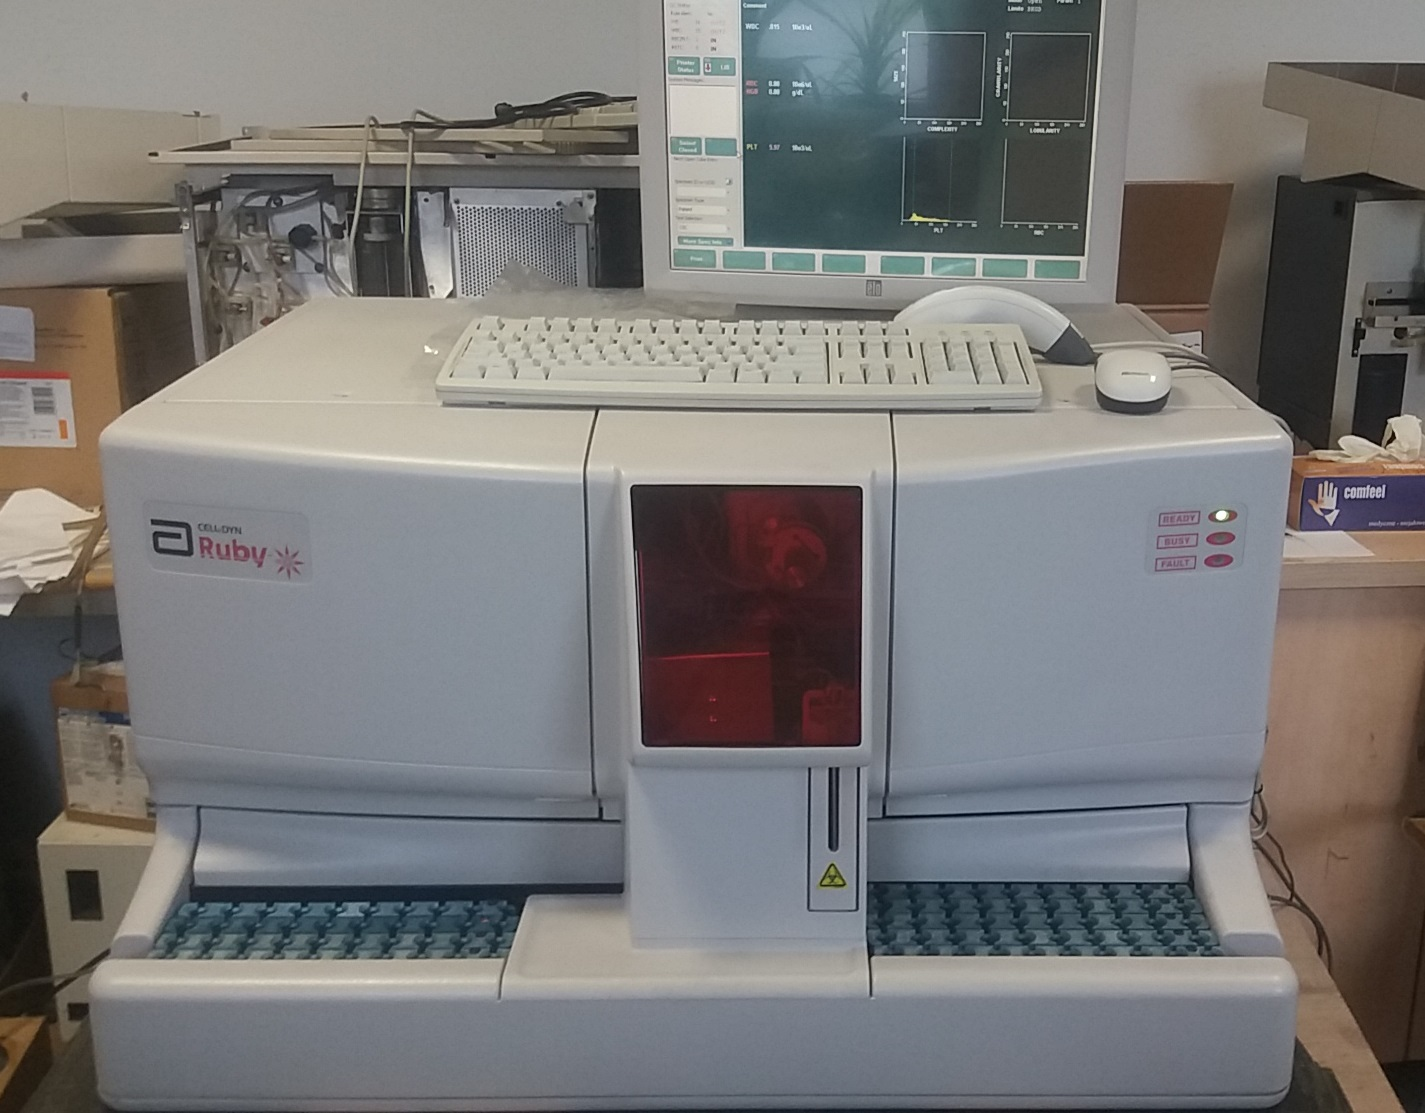 CELL-DYN RUBY – YOM 2008 ready to work! Used or REFURBISHED Sysmex